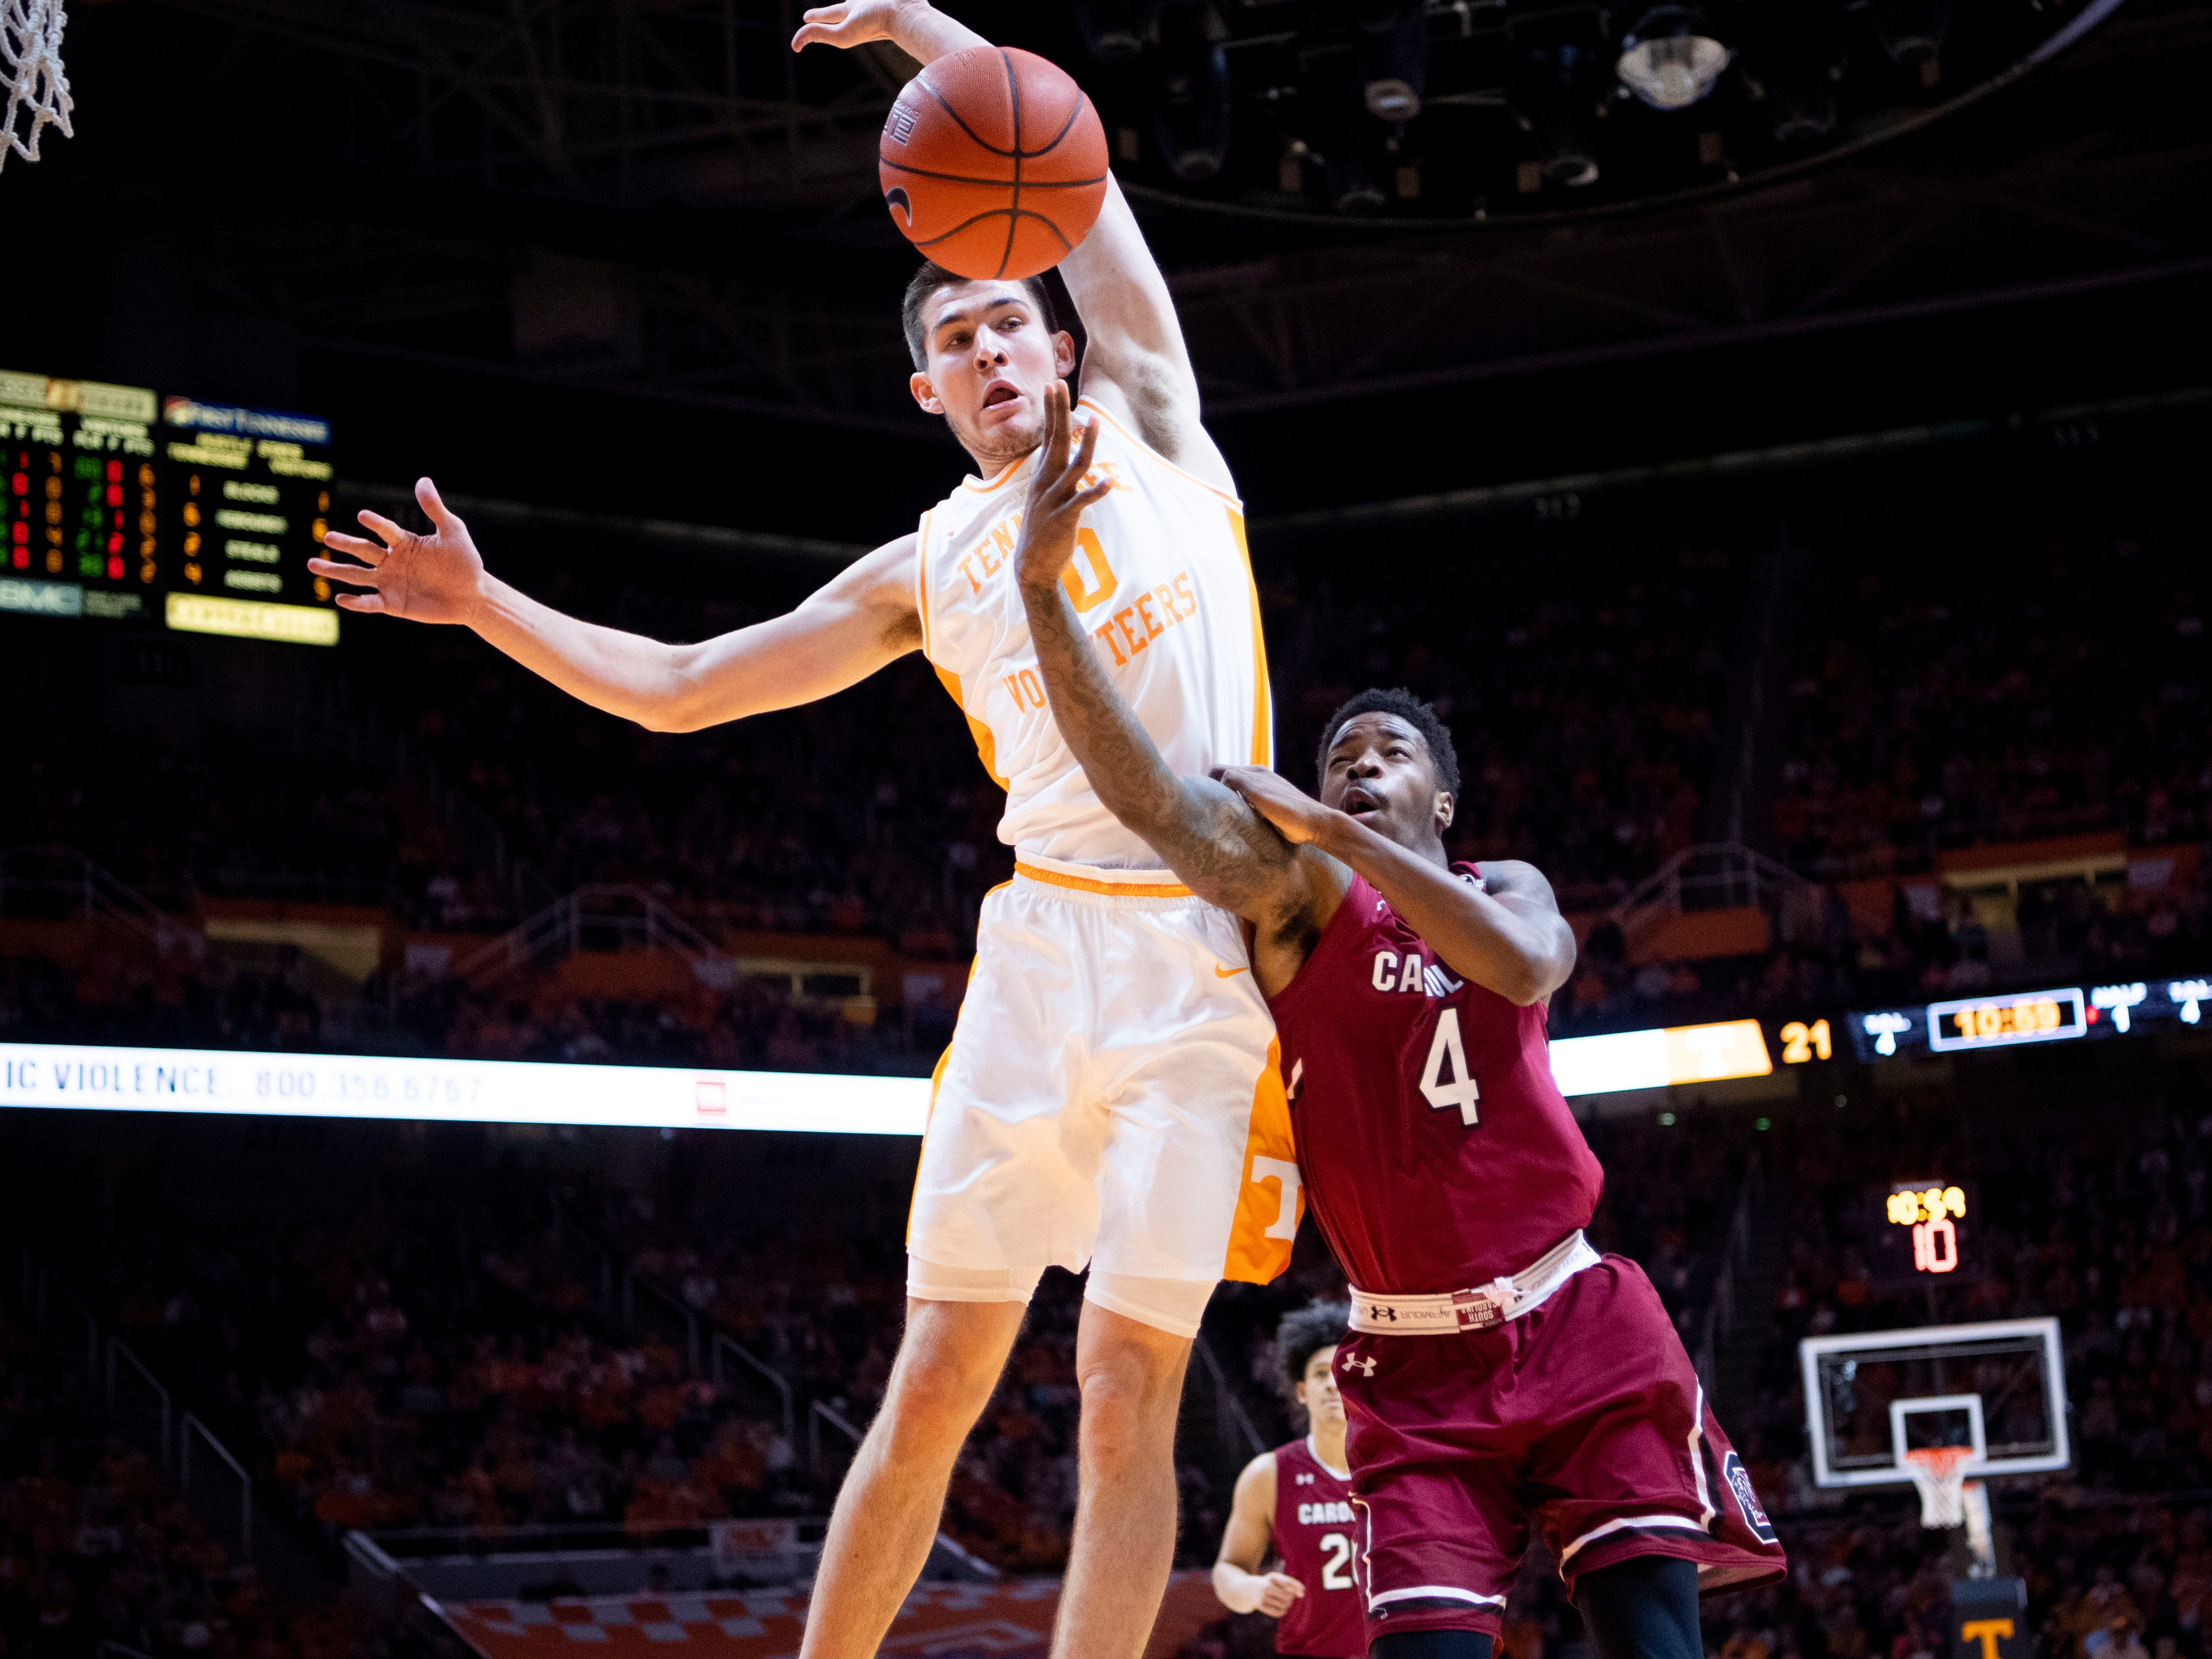 Tennessee's John Fulkerson (10) knocks away a shot attempt by South Carolina's Tre Campbell (4) on Wednesday, February 13, 2019.